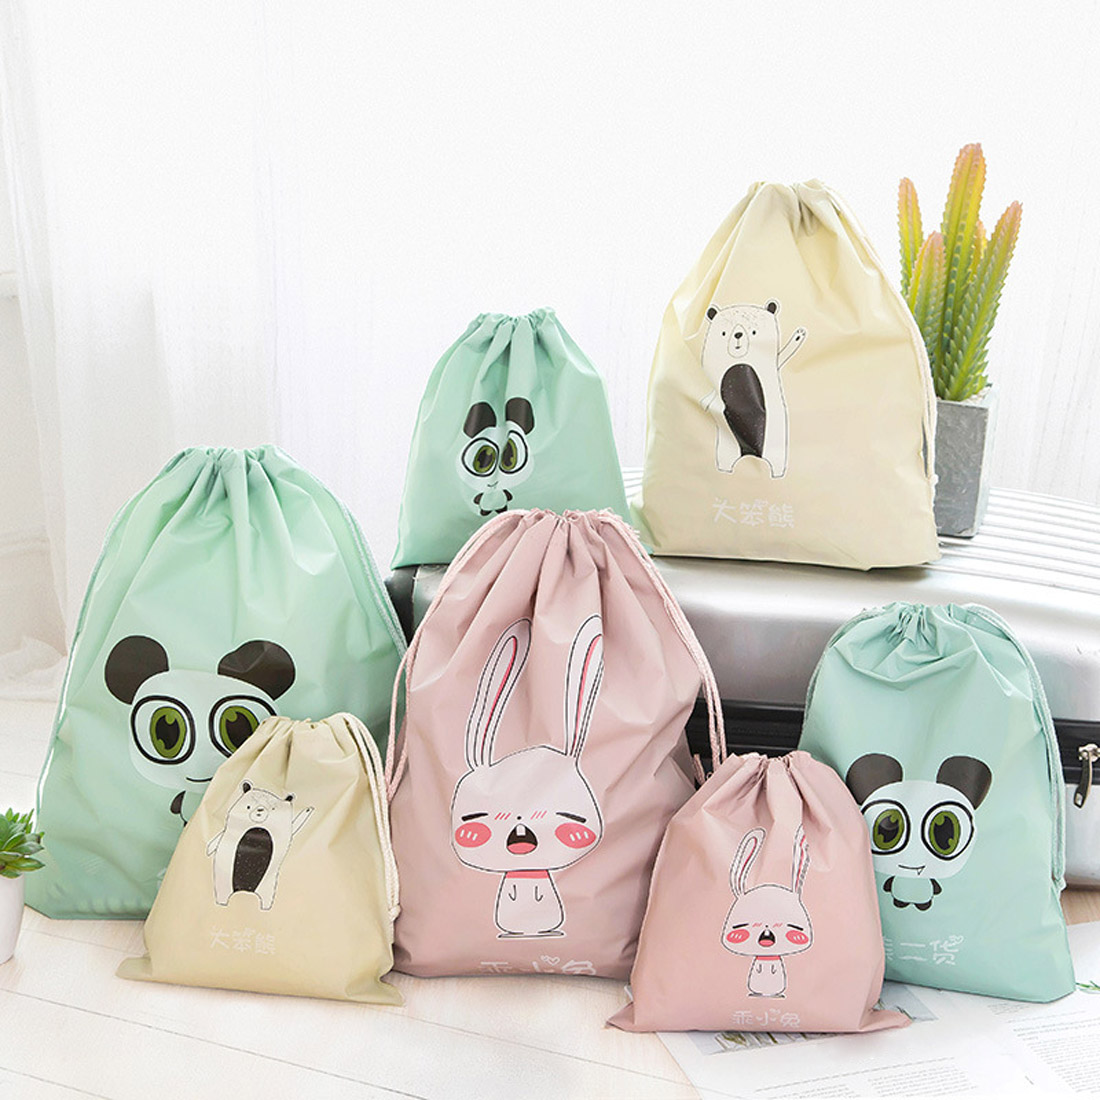 Waterproof Clothes Storage Bag Travel Packing Bag Breast Milk Polar Bear Stripe Lingerie Makeup Drawstring Bag